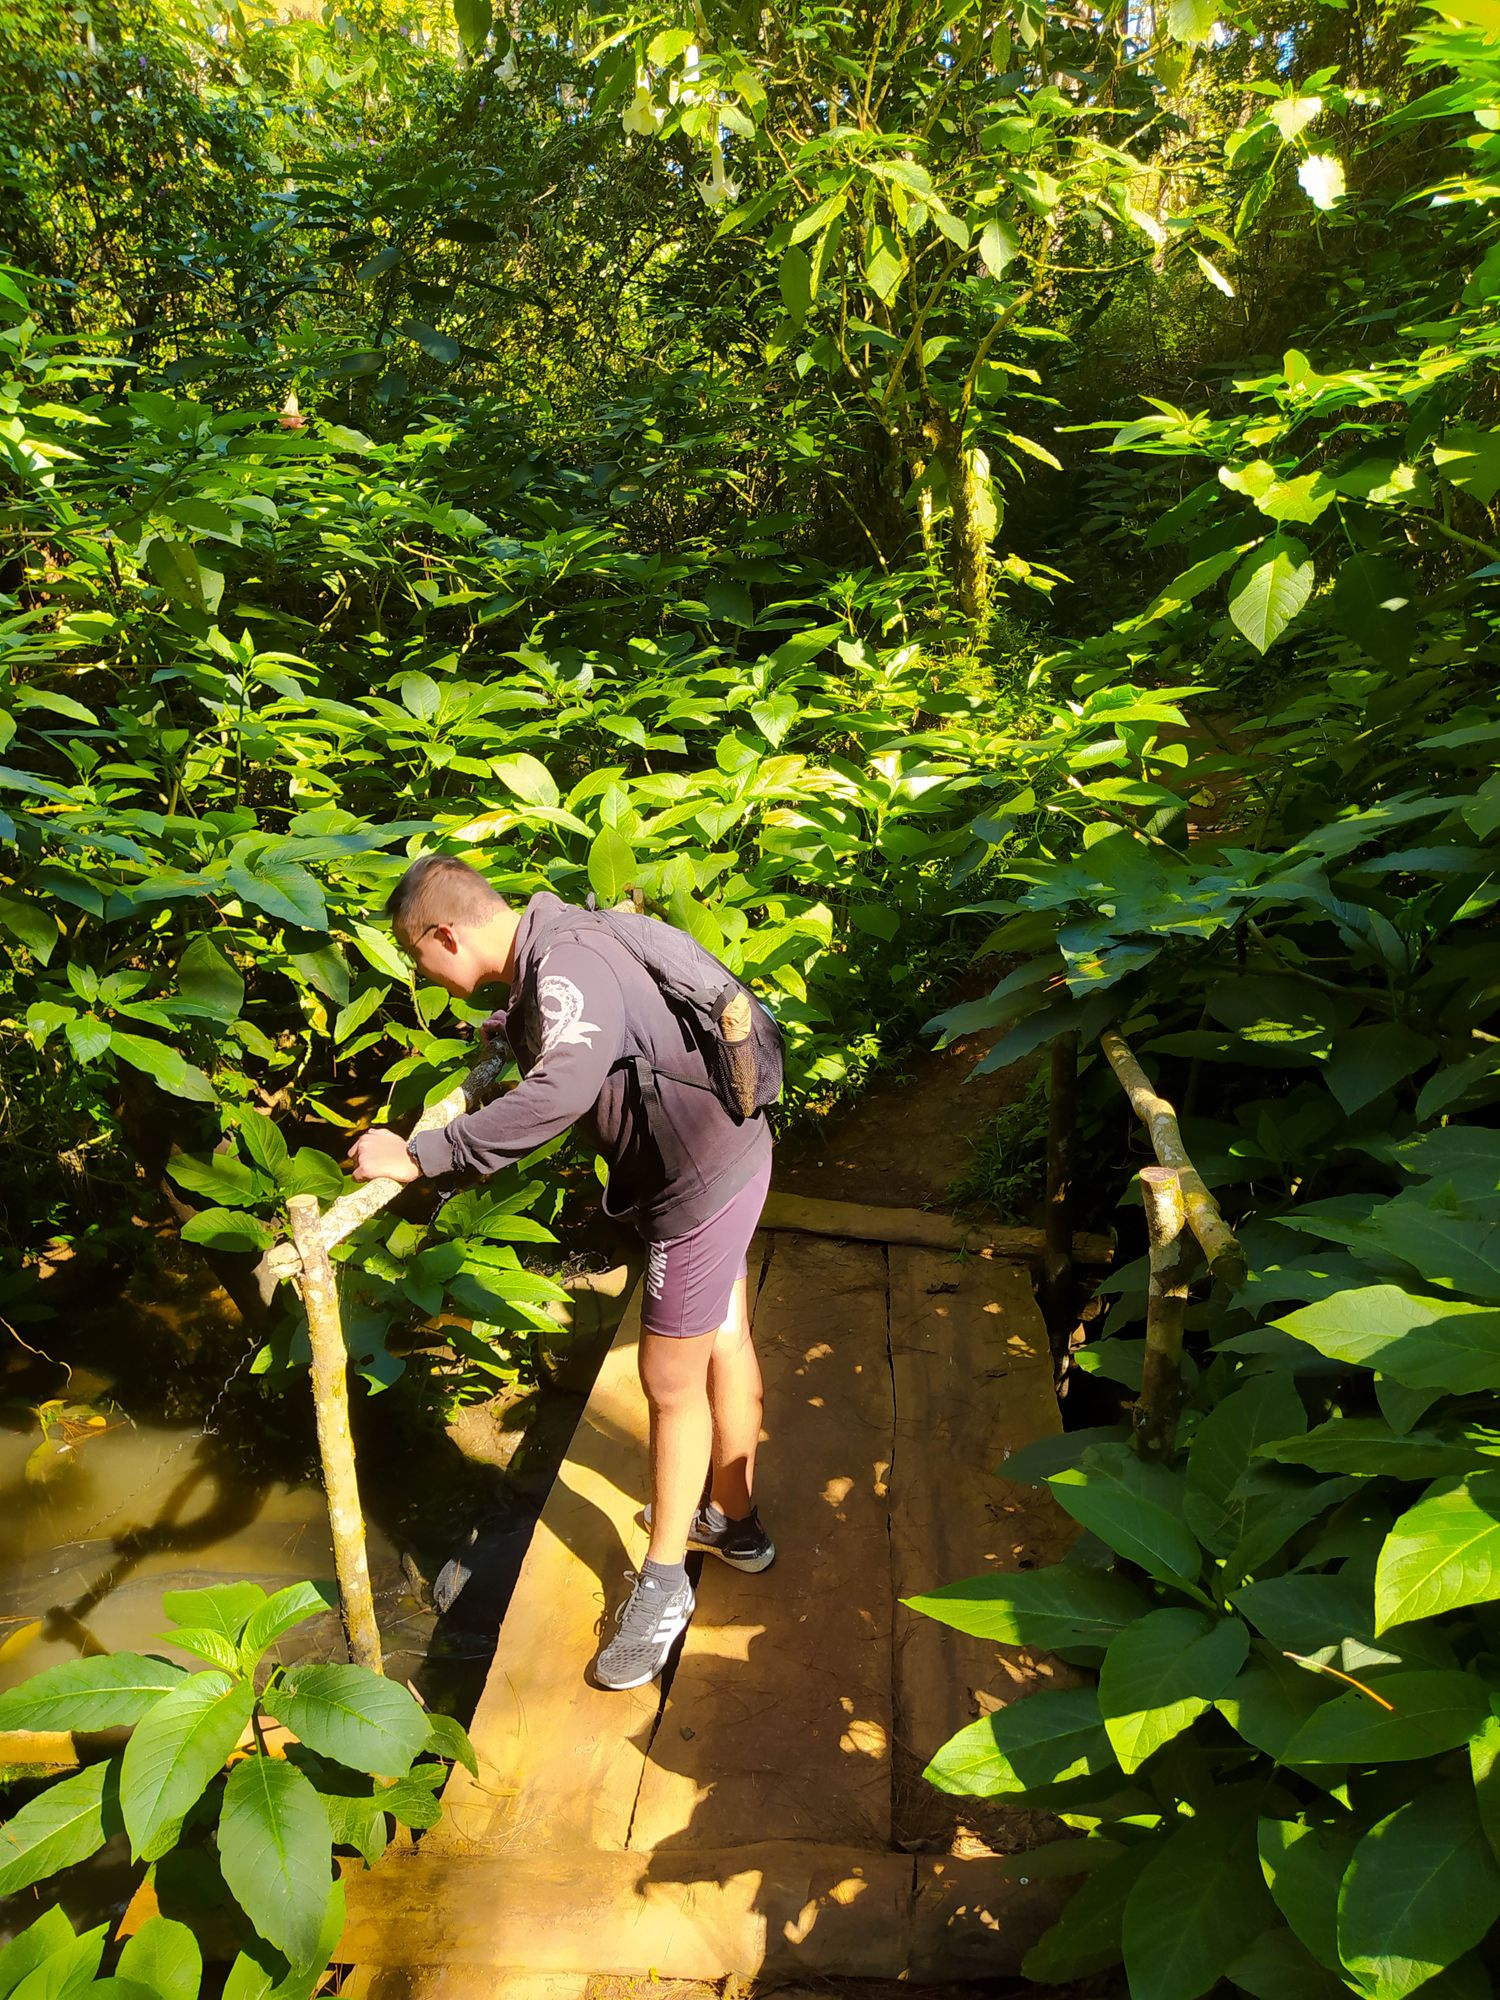 Man standing on a makeshift wooden bridge spanning a murky brook surrounded by thick and dense vegetation somewhere along the Eco-Trail